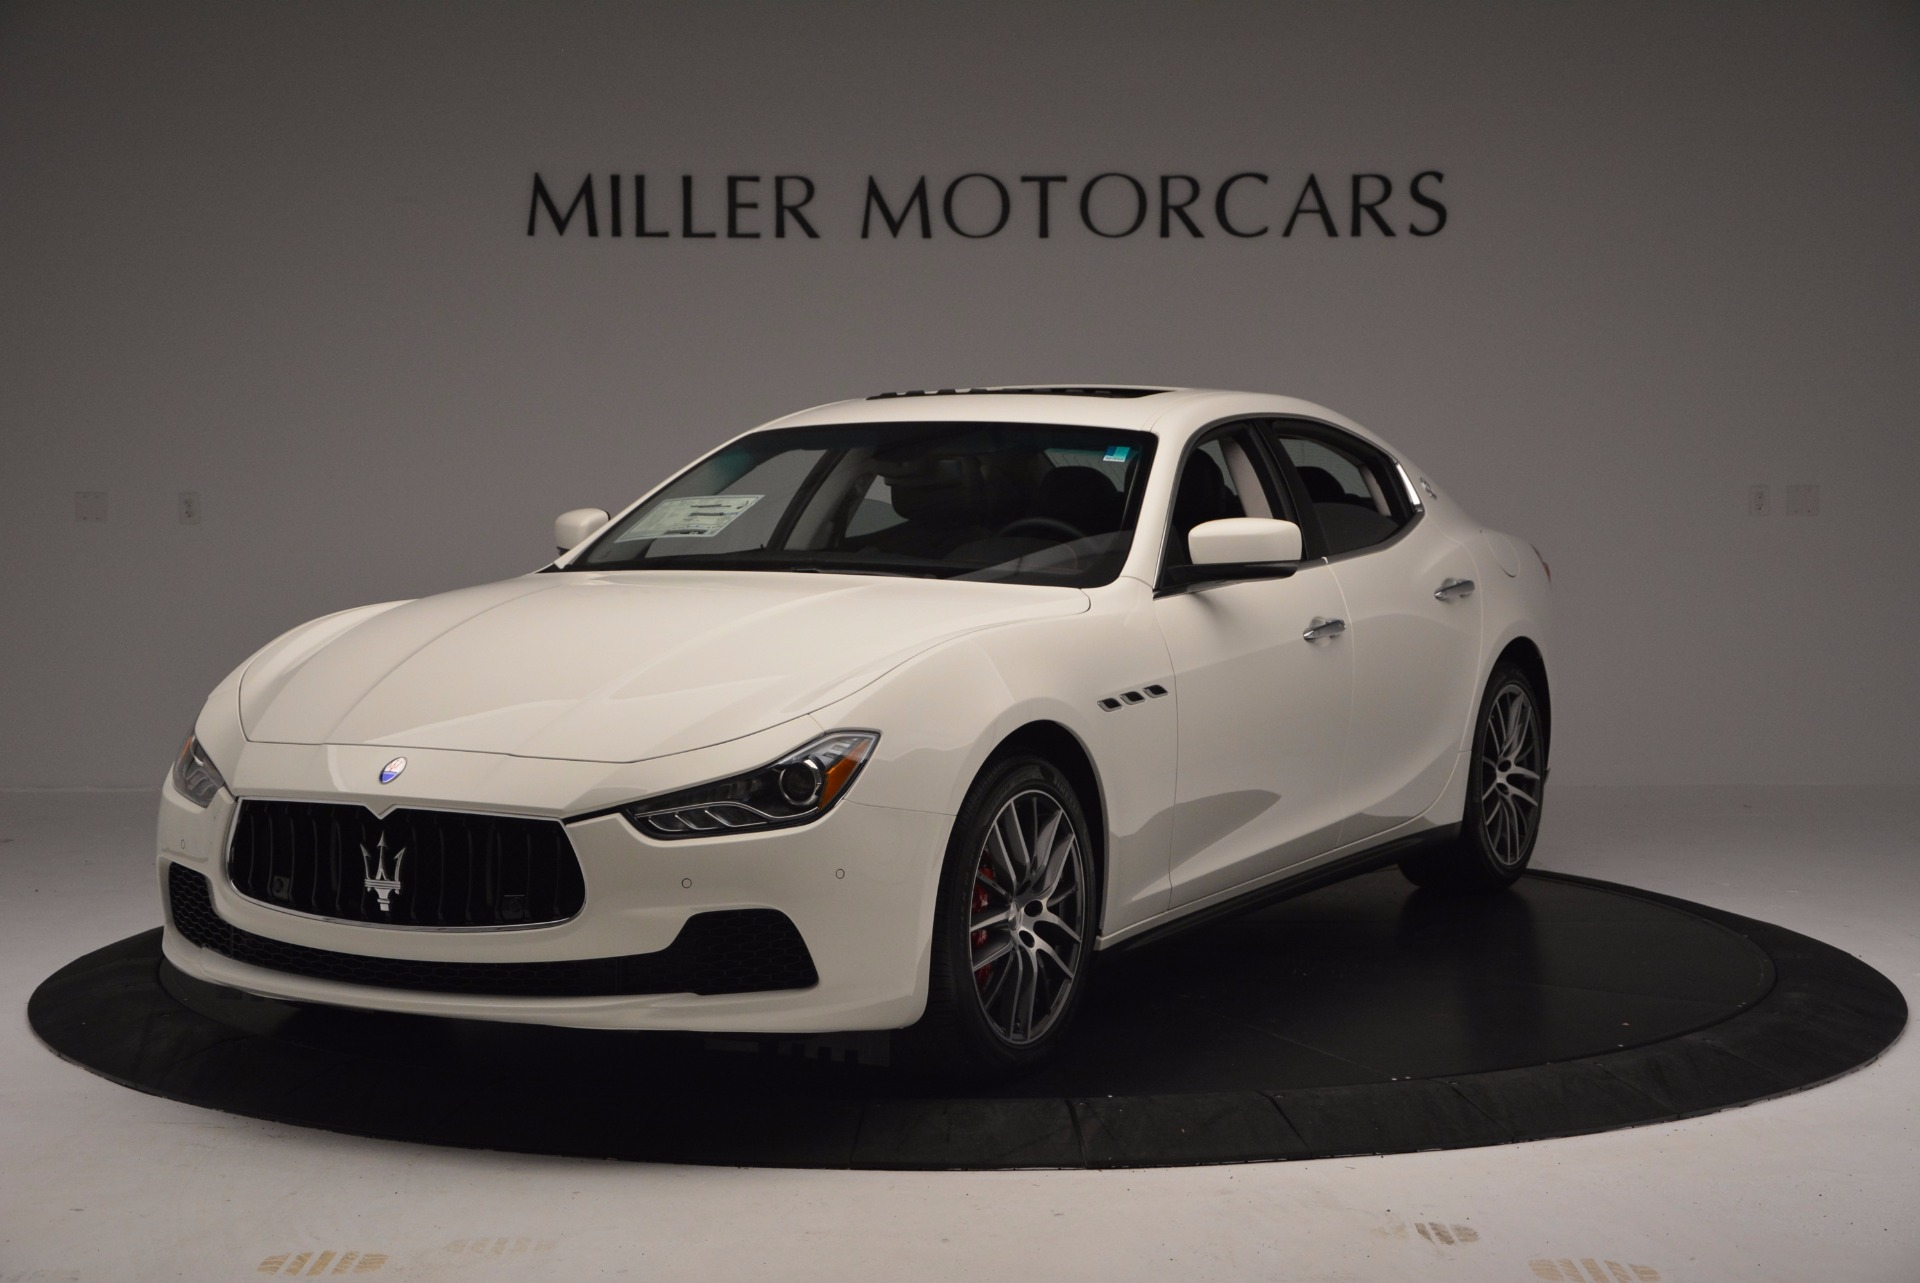 Used 2017 Maserati Ghibli S Q4 for sale Sold at Bentley Greenwich in Greenwich CT 06830 1